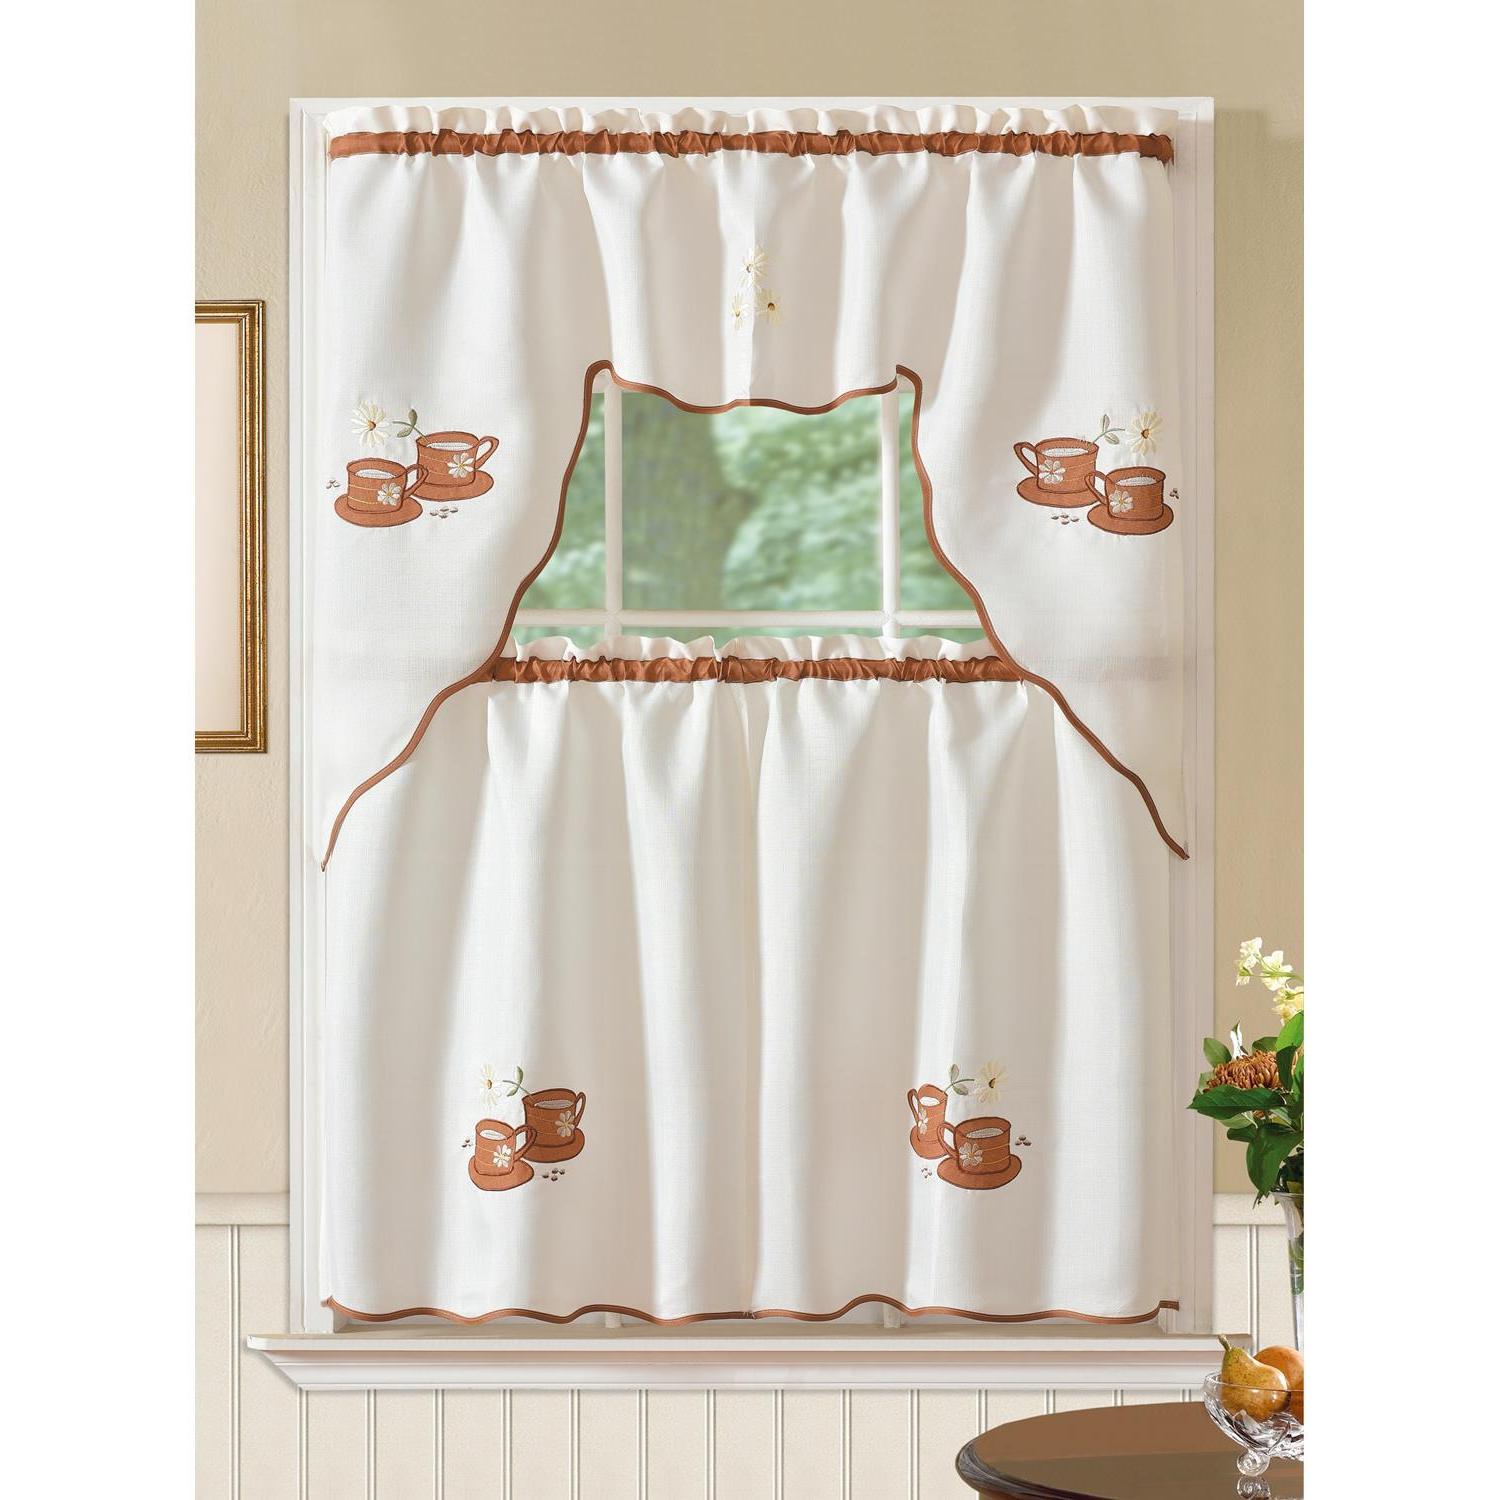 Most Recent Details About Imperial Coffee Jacquard Kitchen Curtain Set Intended For Spring Daisy Tiered Curtain 3 Piece Sets (View 11 of 20)